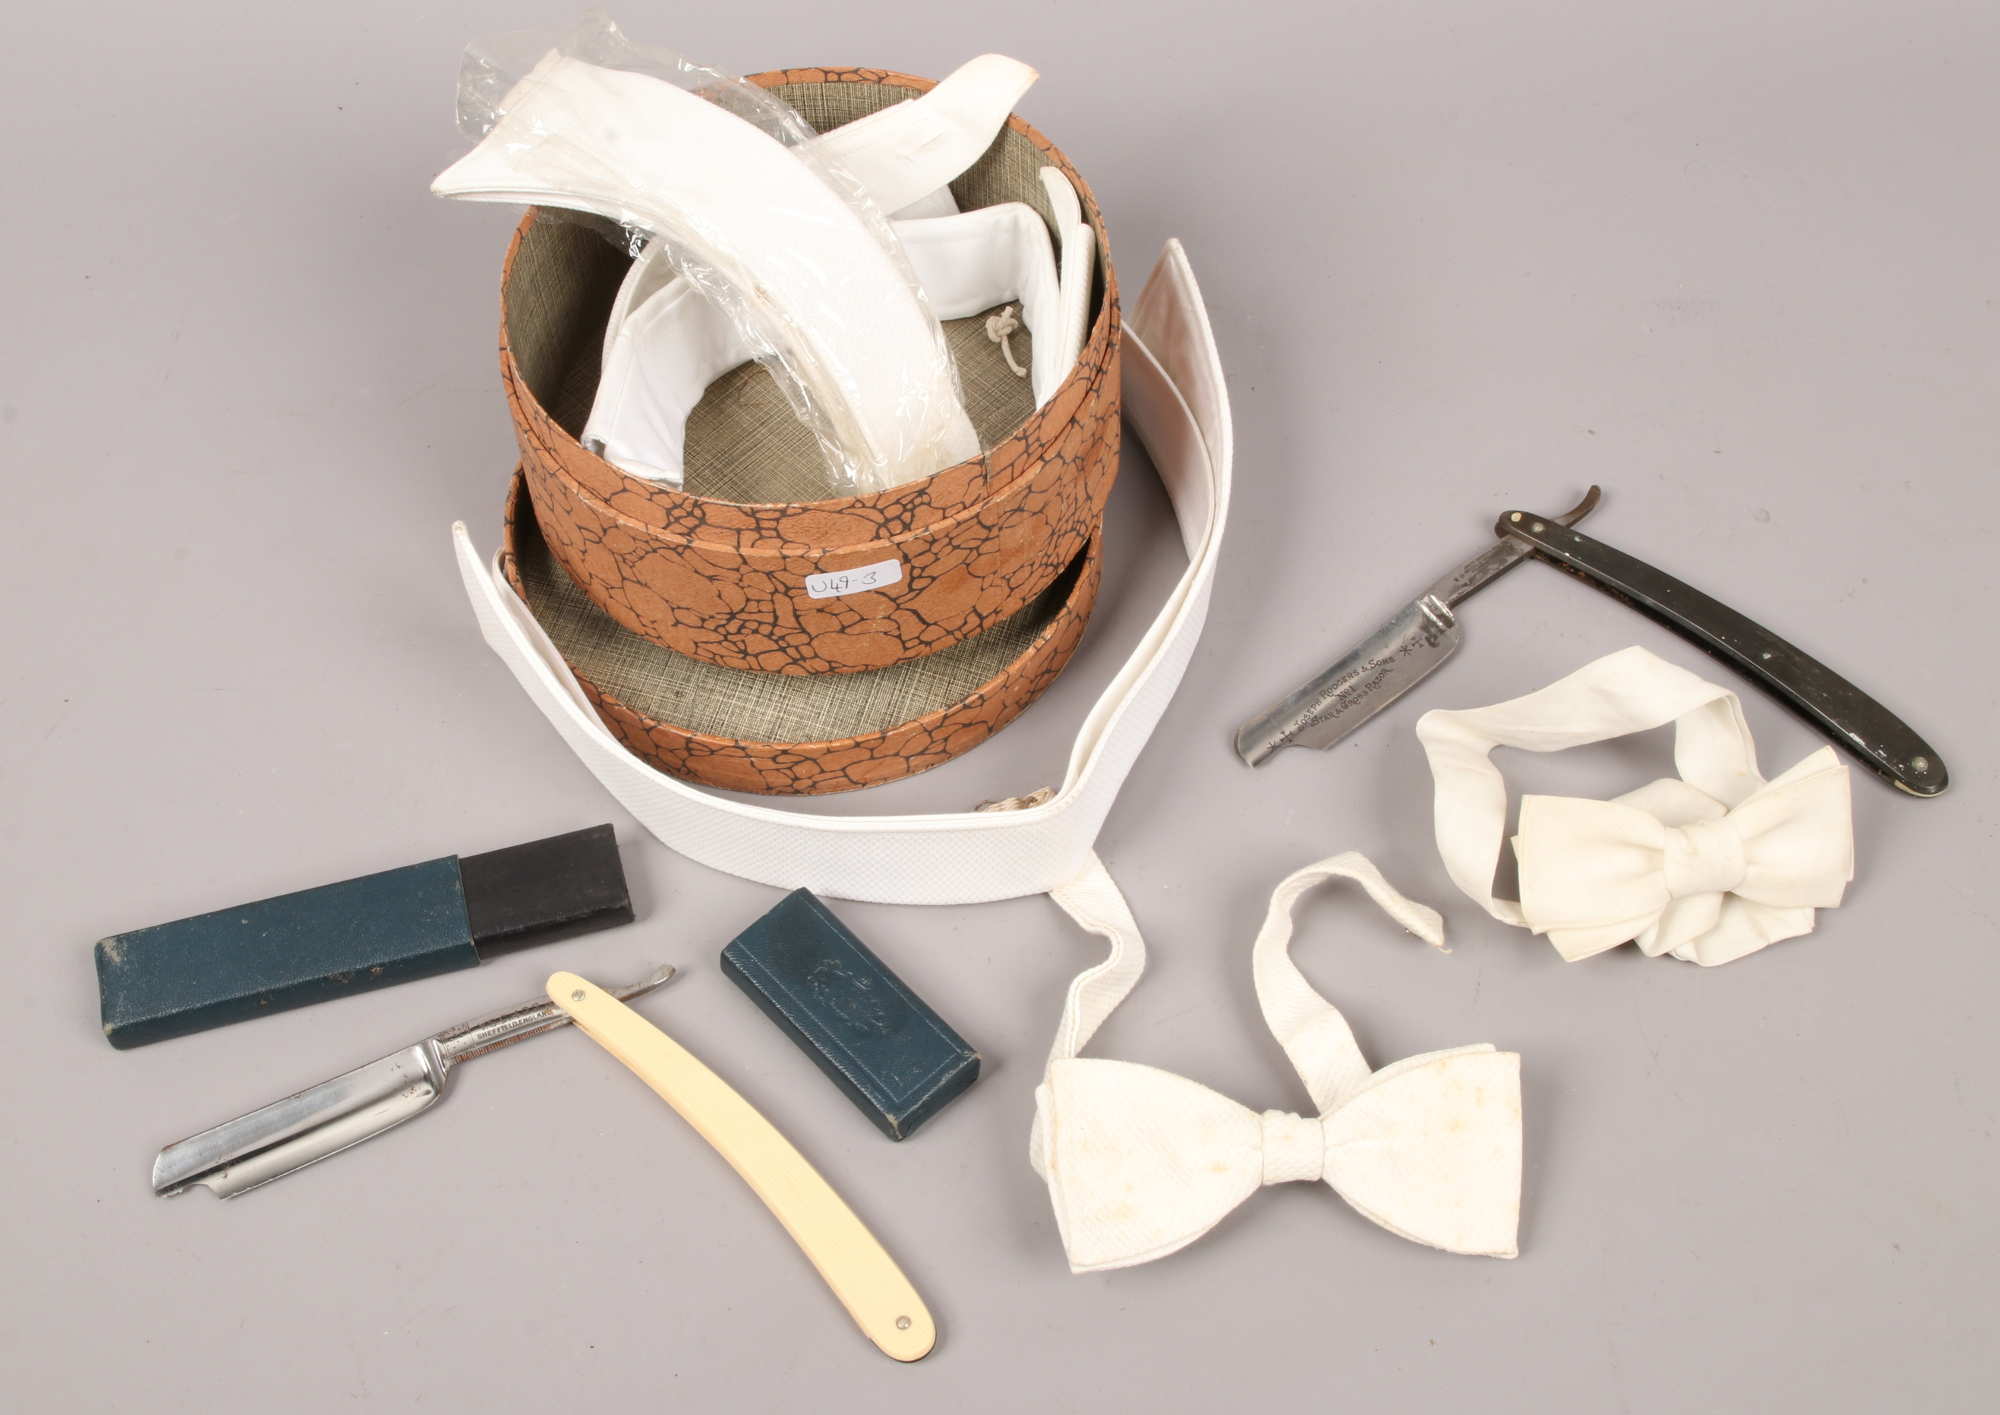 Lot 56 - A small collection of gentleman's collars, bow ties and two cut throat razors (damaged) by Joseph